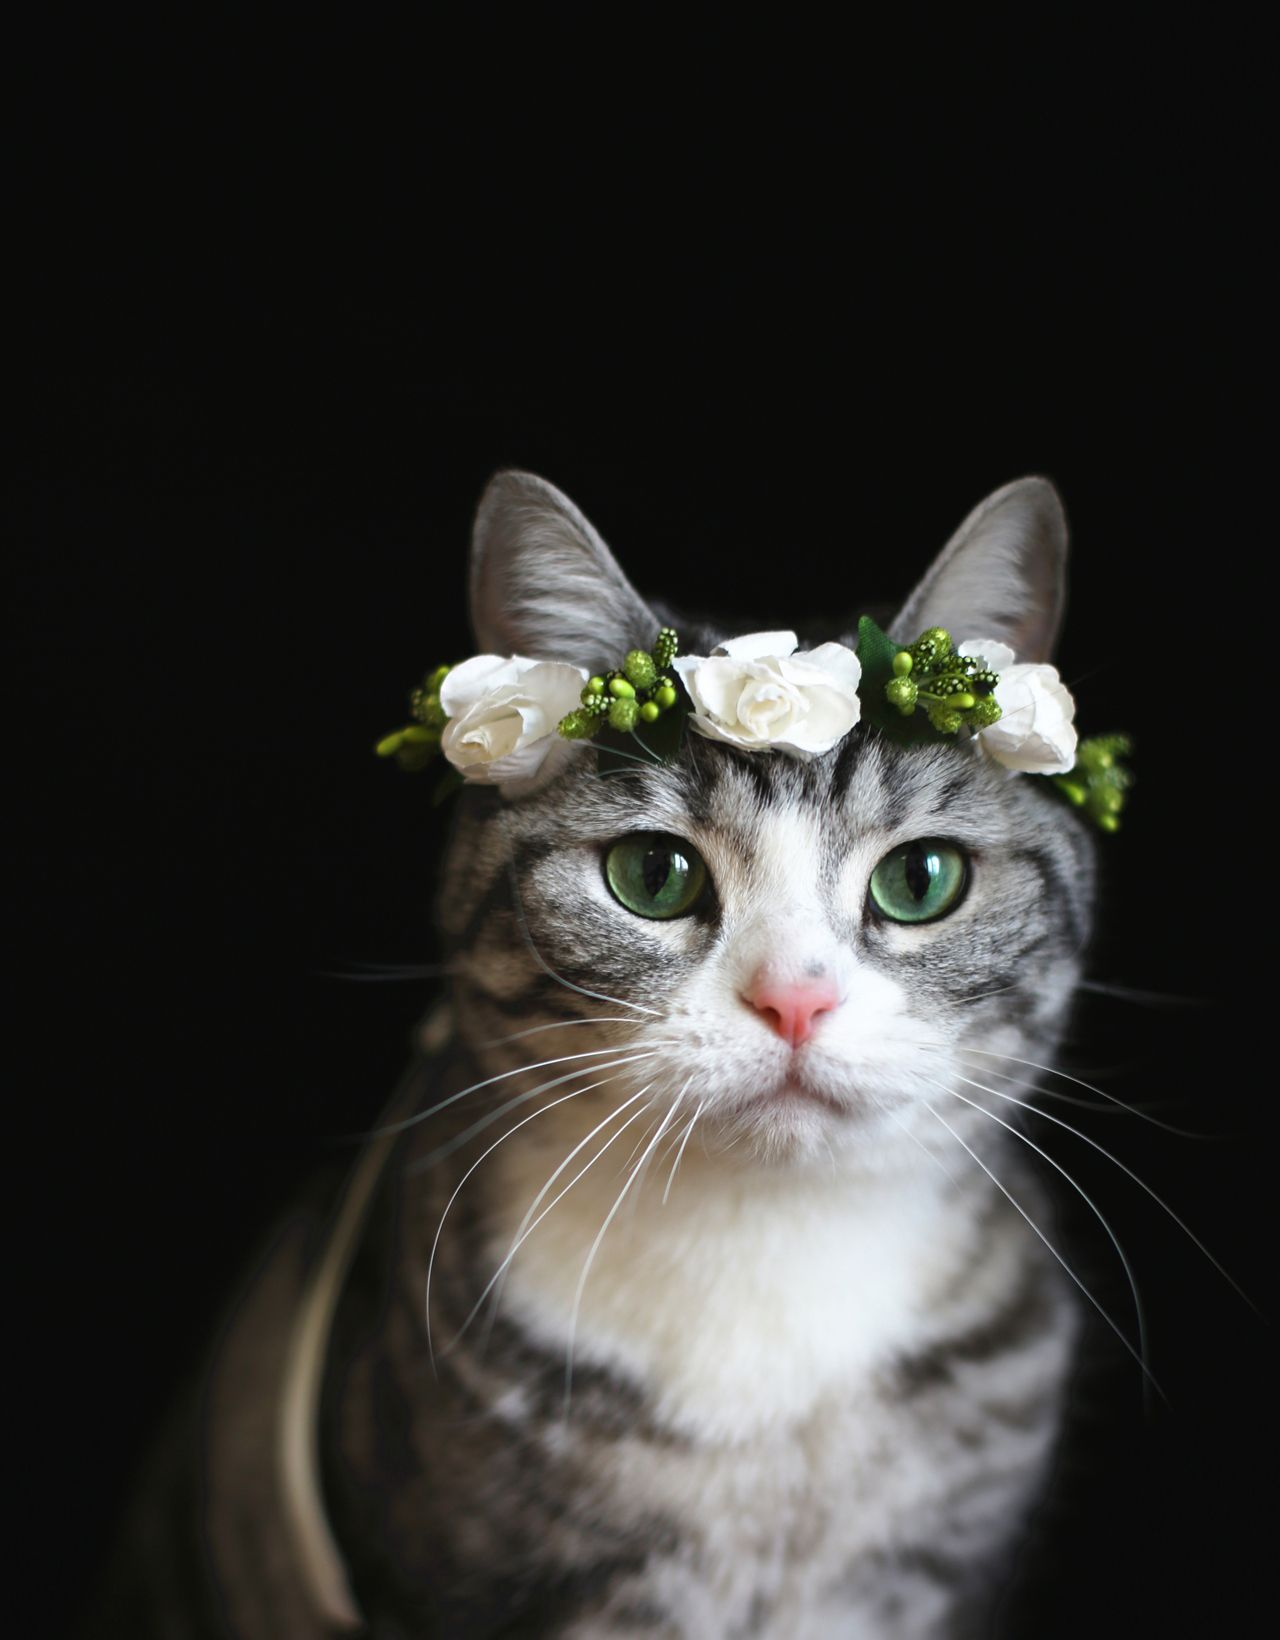 Looks Cuter In Flower Crown Cute Cats And Kittens Pinterest